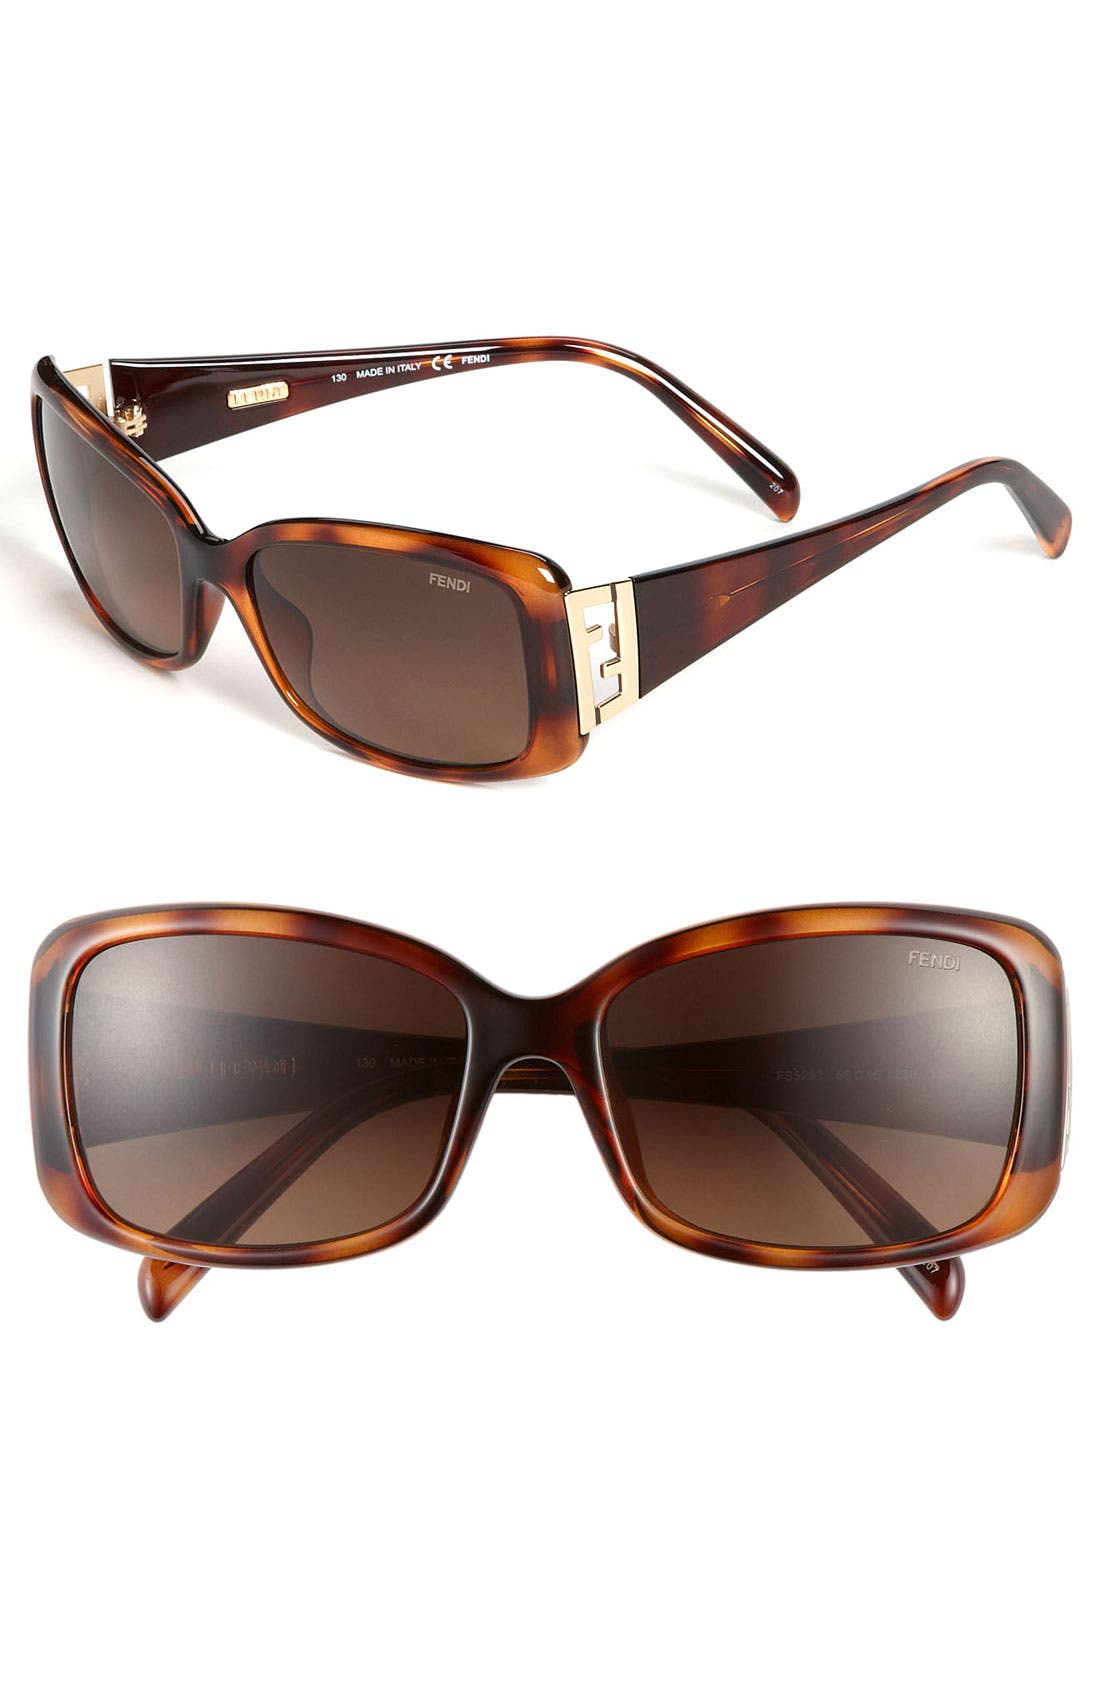 Alternate Image 1 Selected - Fendi 'Double F' 56mm Sunglasses